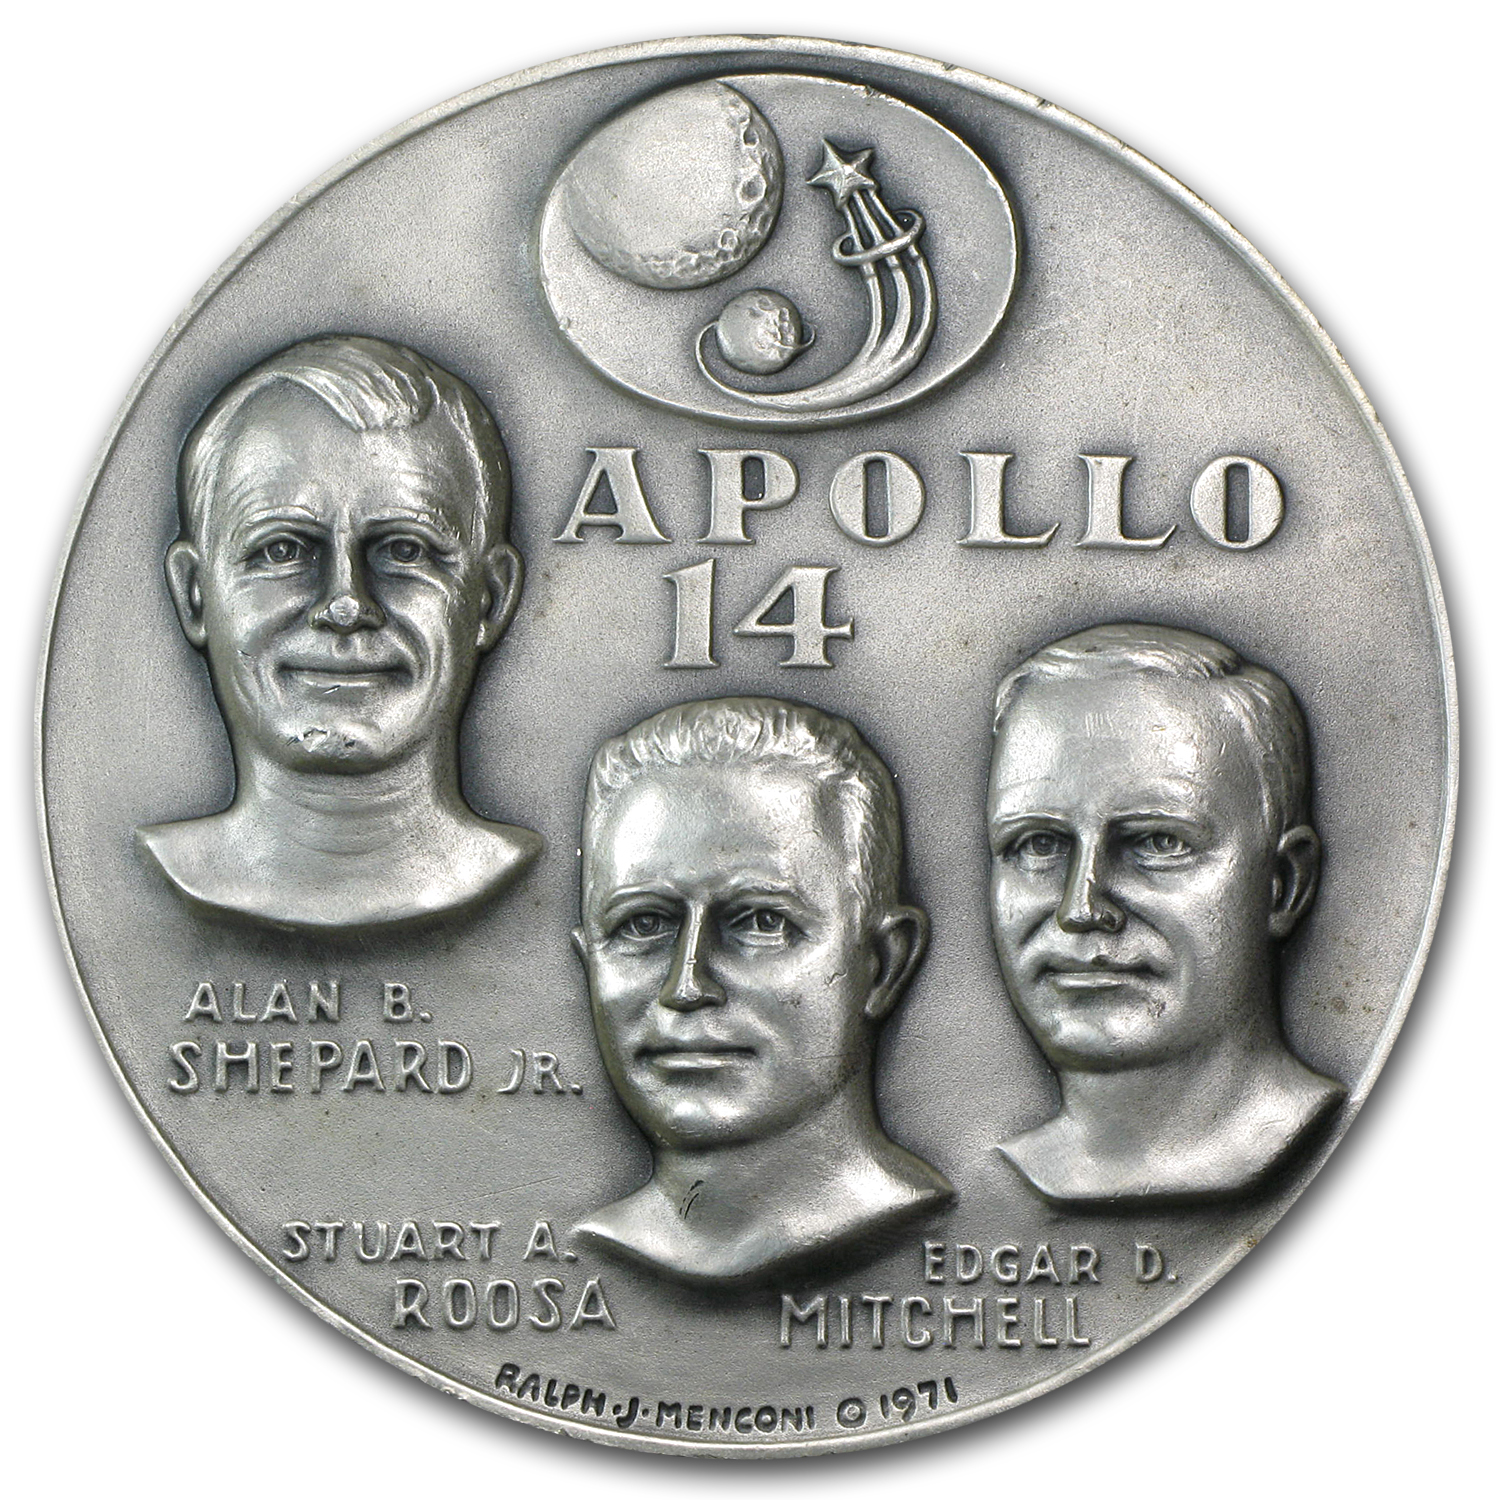 4.69 oz Silver Rounds - APOLLO 14